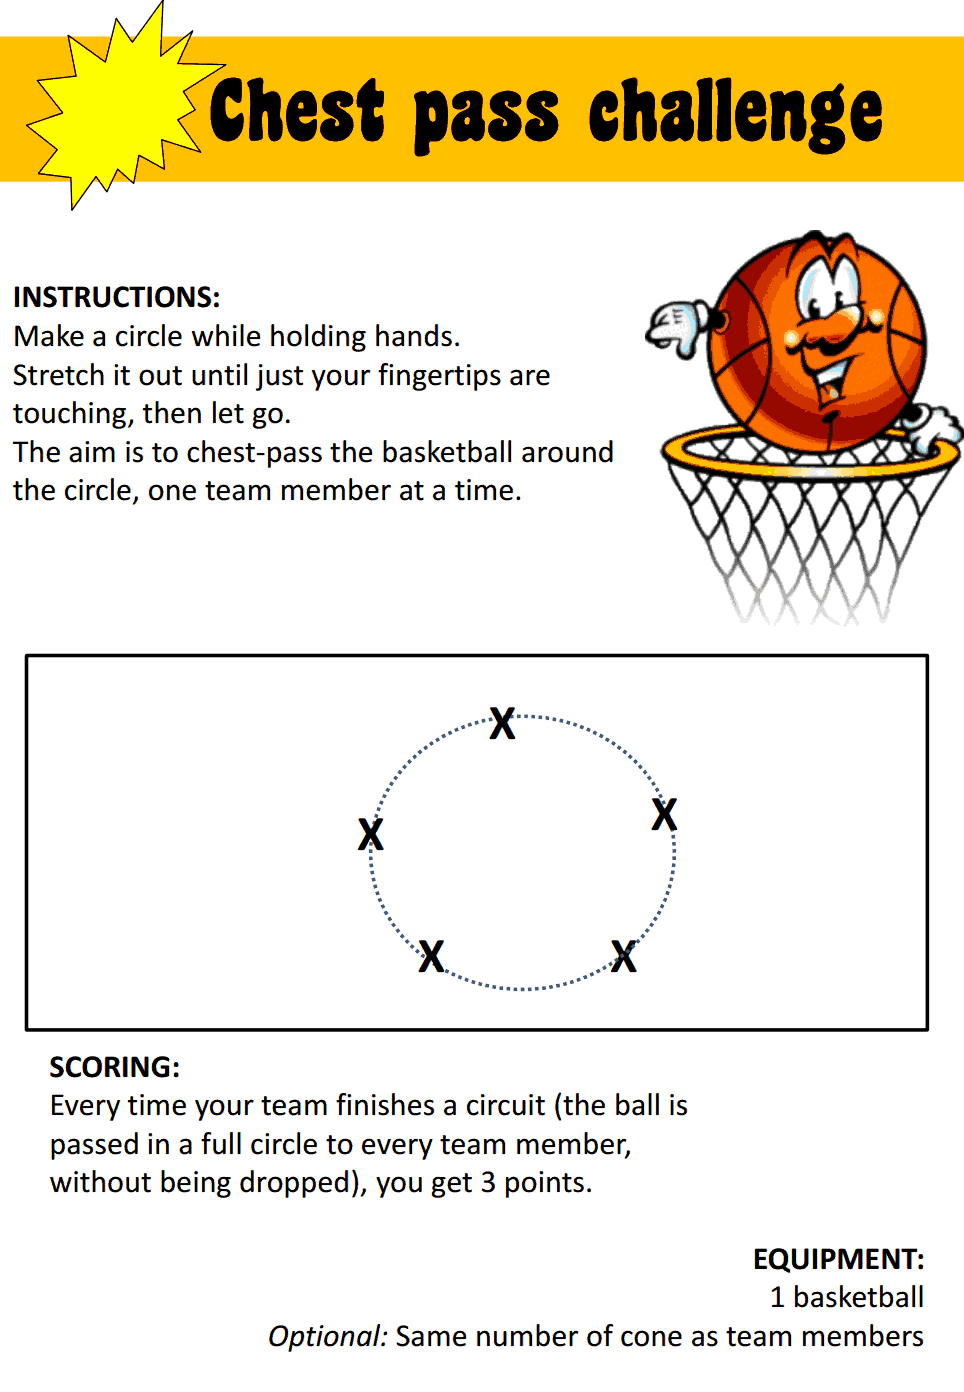 Pe And Fun Games Station Teaching Cards Pdf Physical Education Lessons Basketball Games For Kids Pe Games Elementary